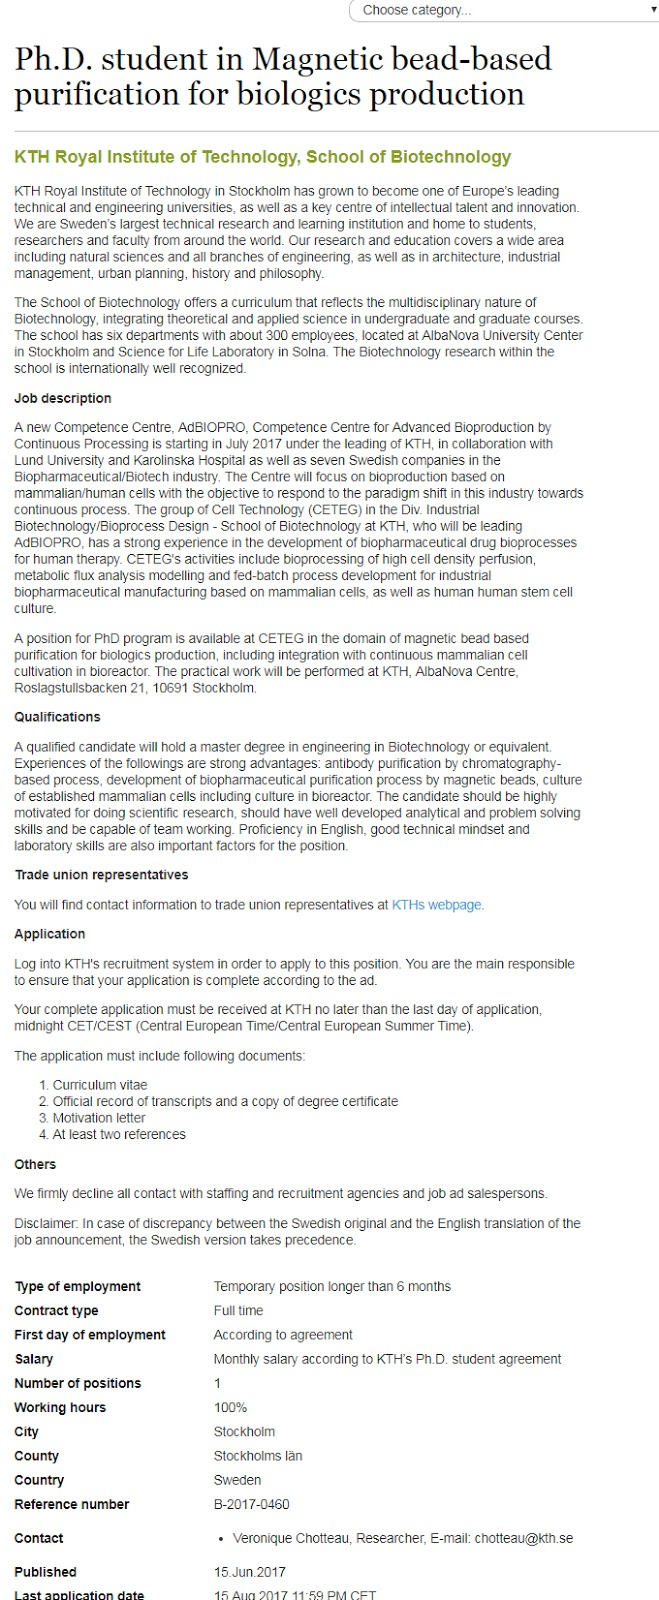 PhD Student Scholarships in Magnetic Bead Based Purification in Sweden 2017